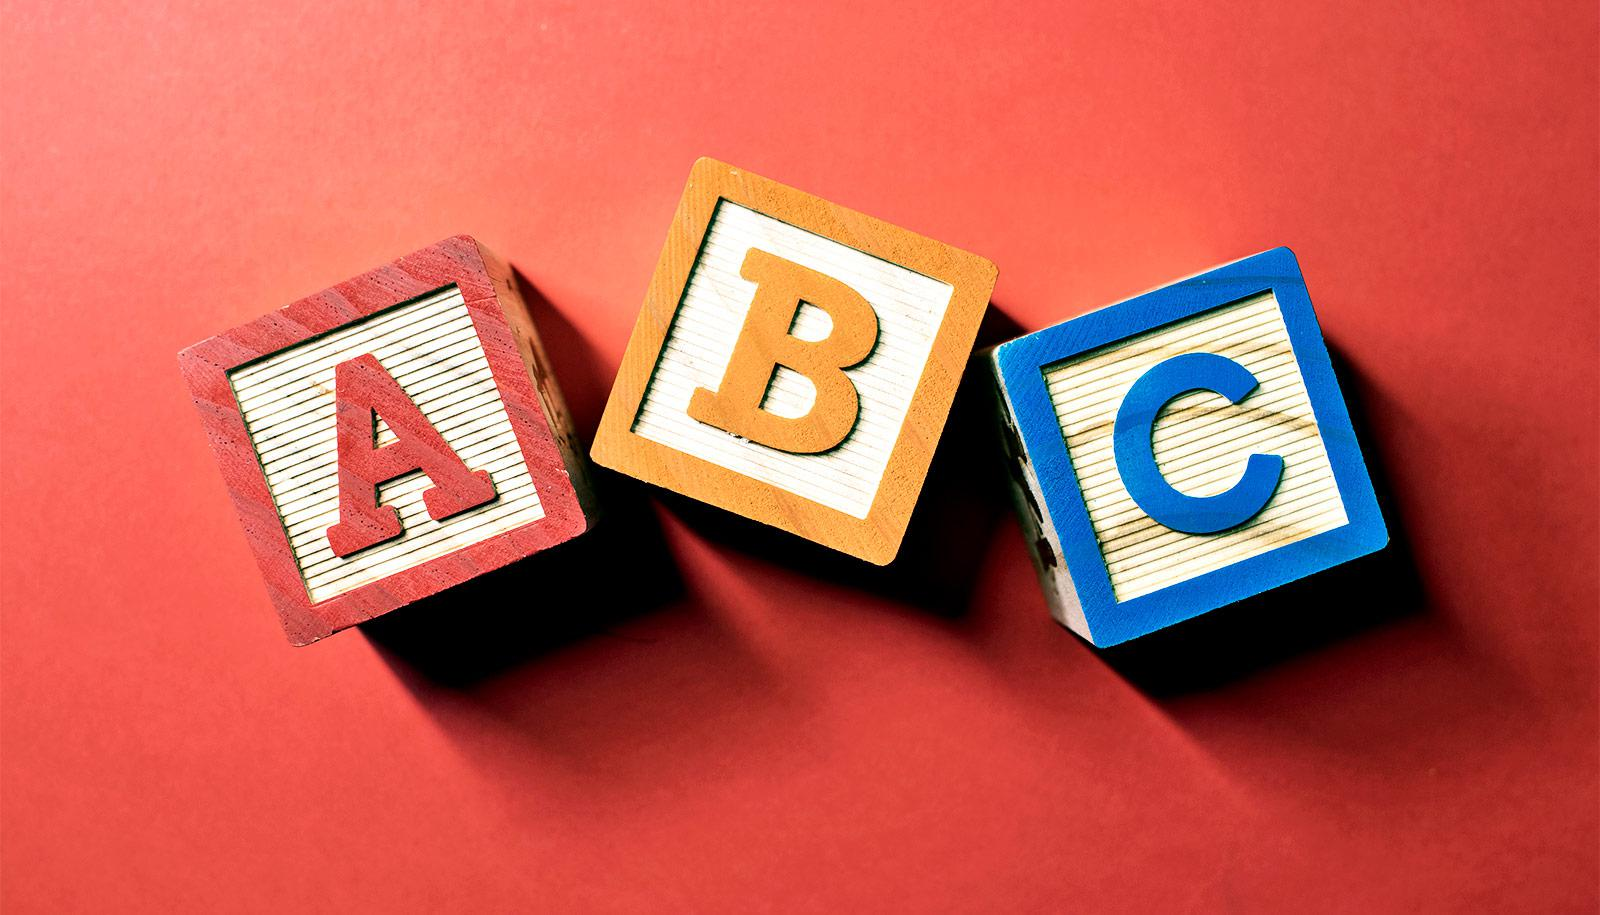 Toy ABC blocks sit on a red background